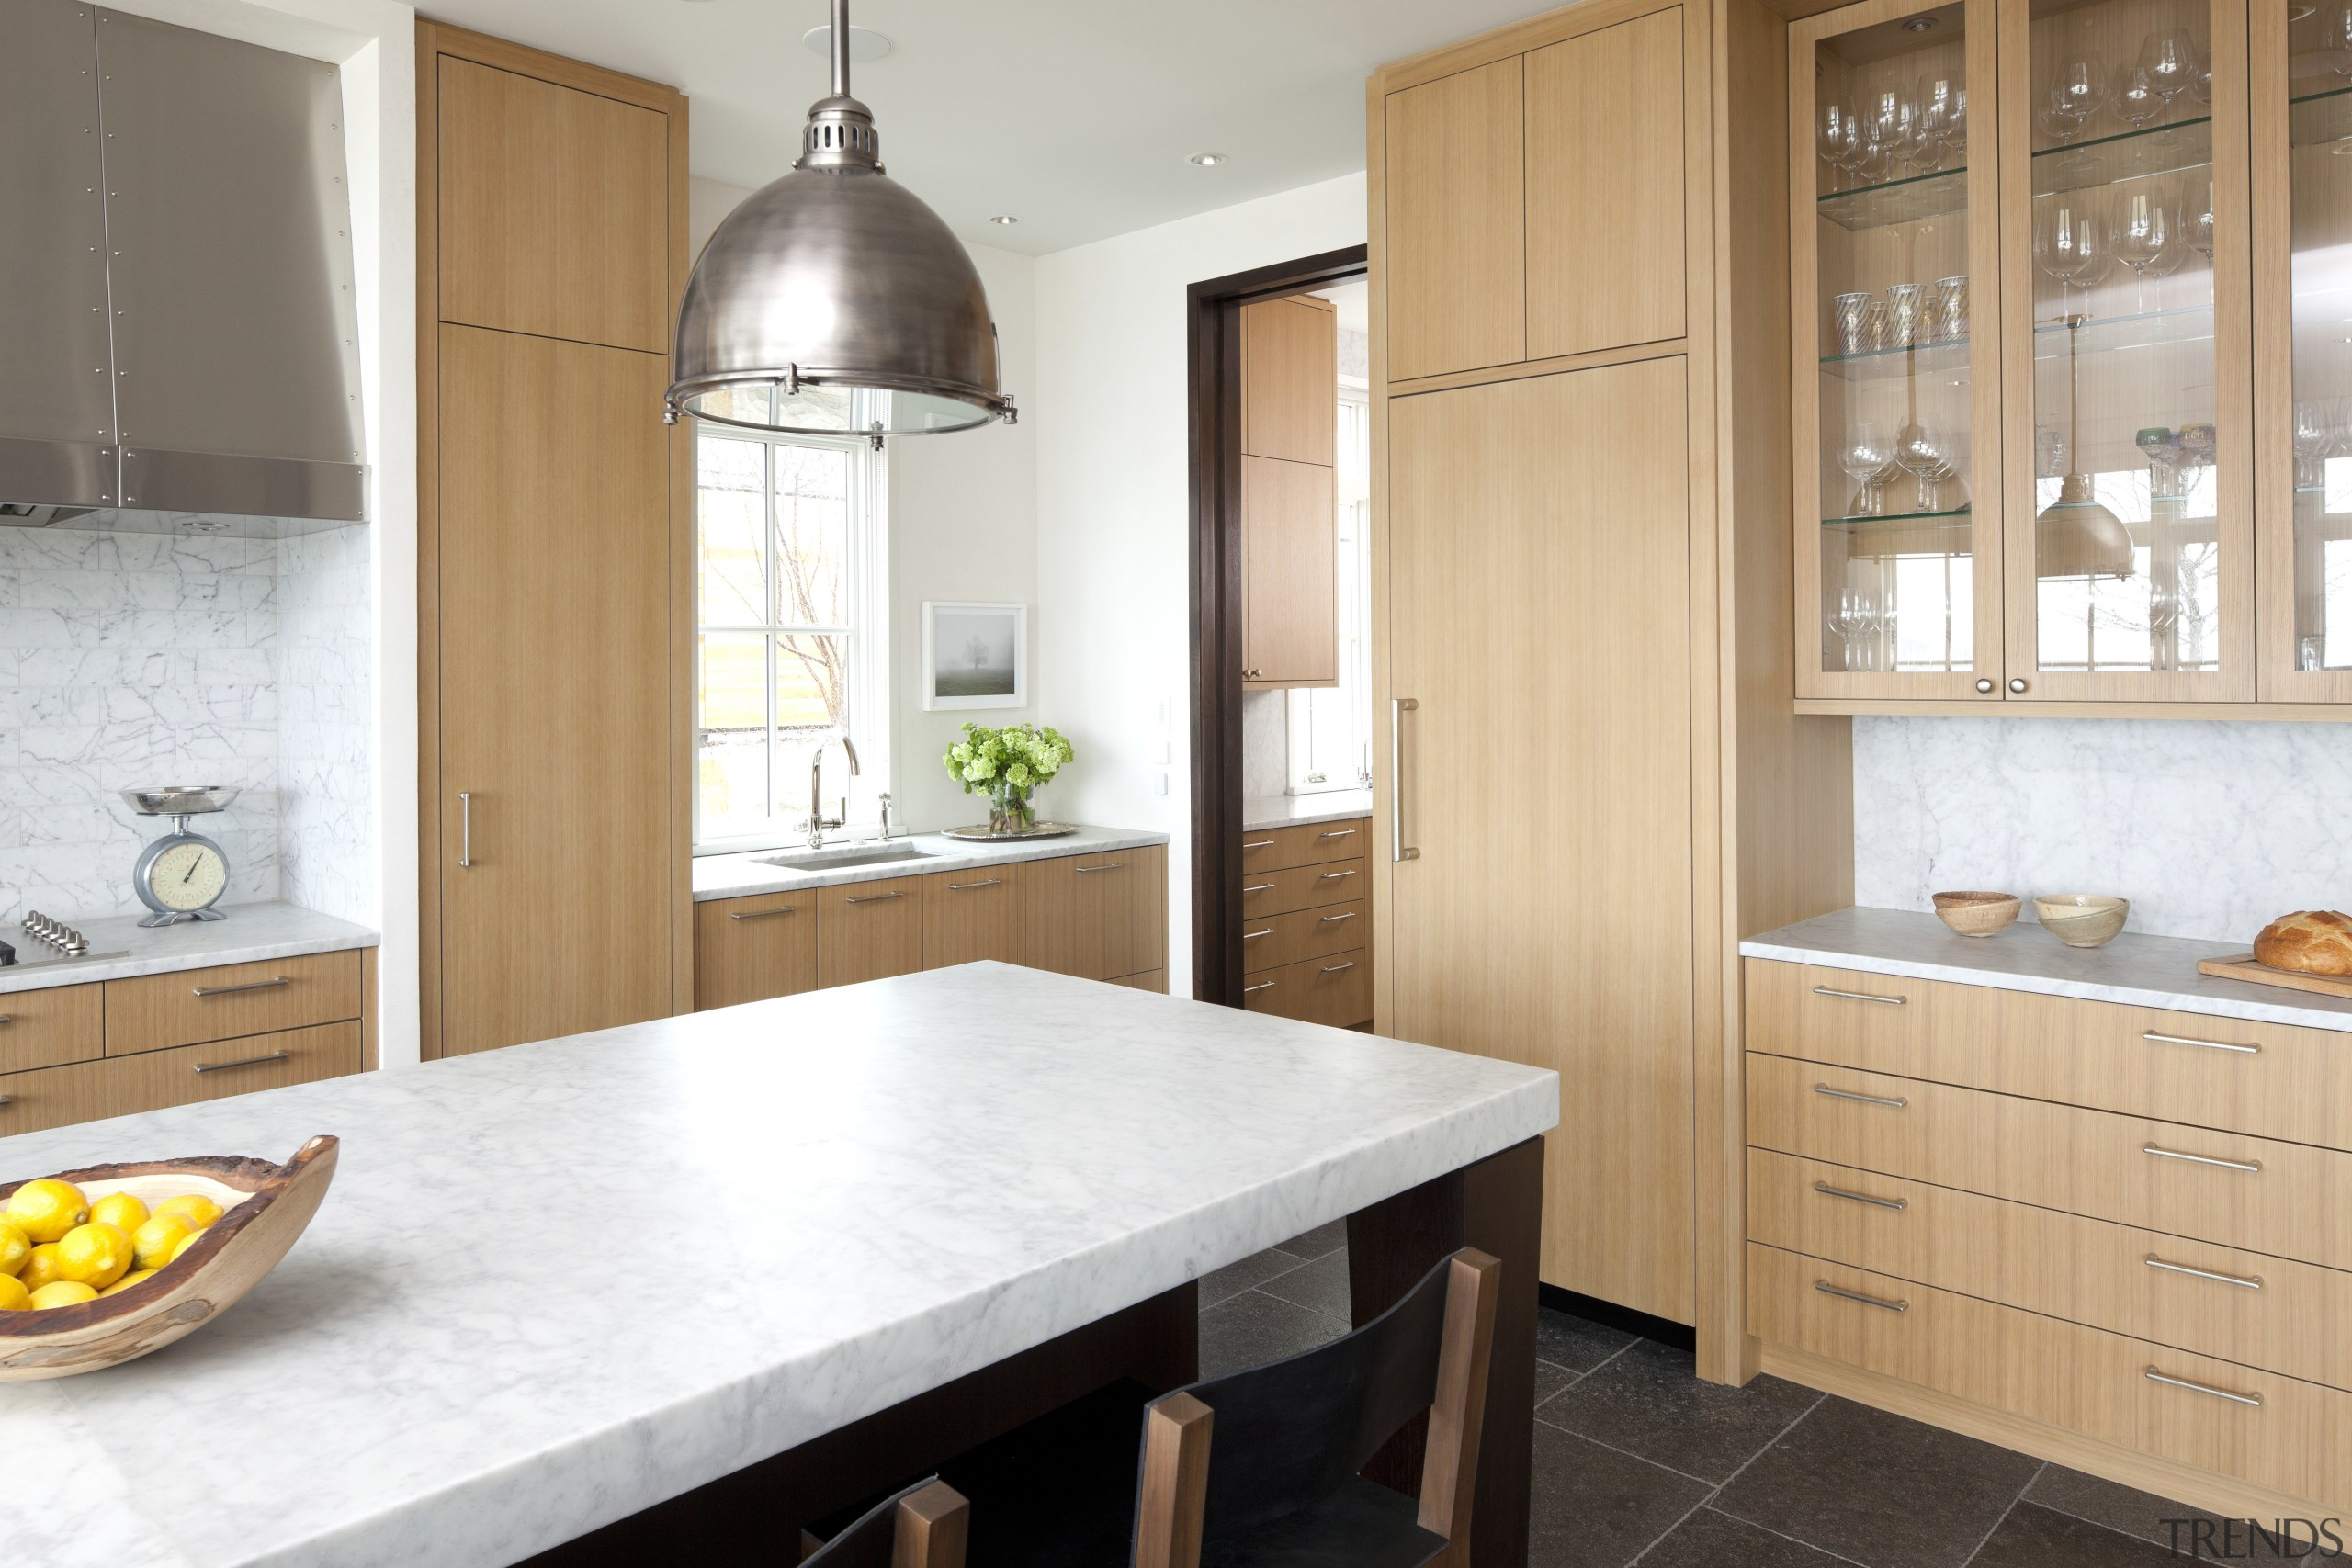 Traditional style new home - Traditional style new cabinetry, countertop, cuisine classique, floor, home, interior design, kitchen, property, real estate, room, white, orange